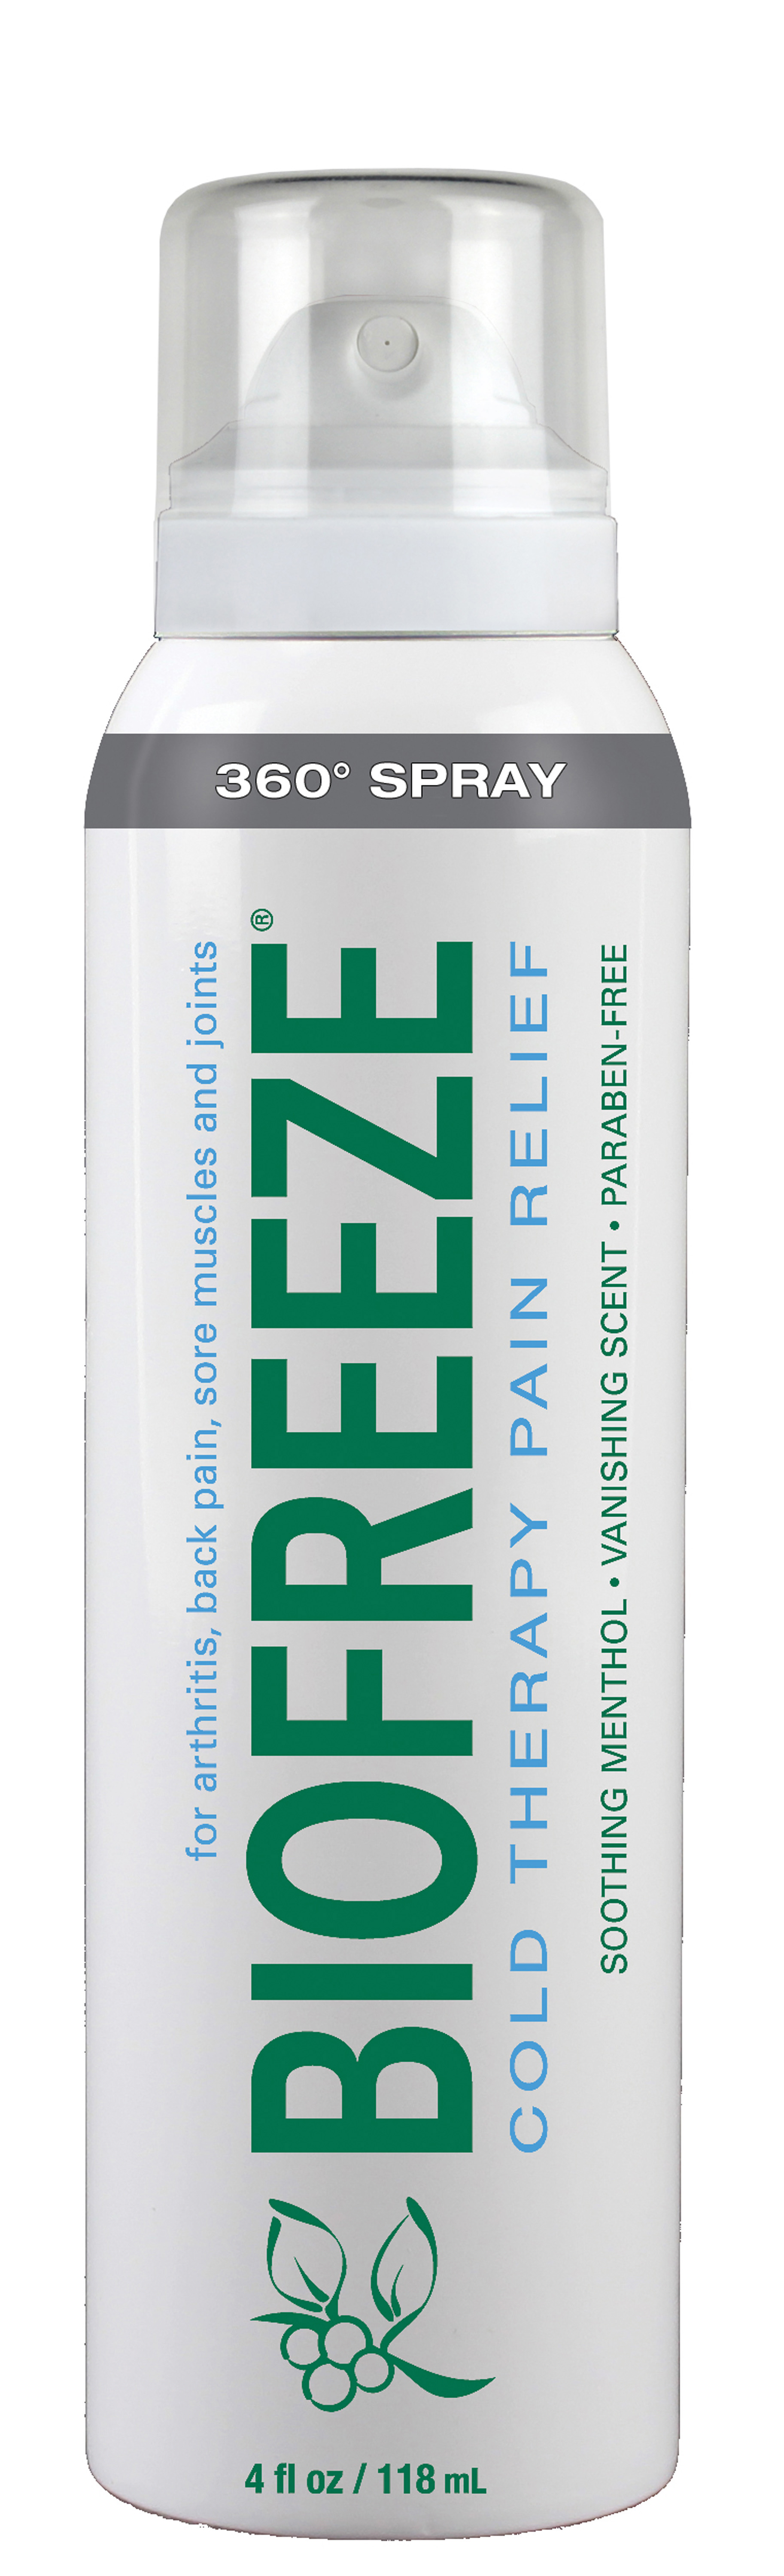 Performance Health Introduces New Biofreeze 360°™ Spray, MASSAGE Magazine